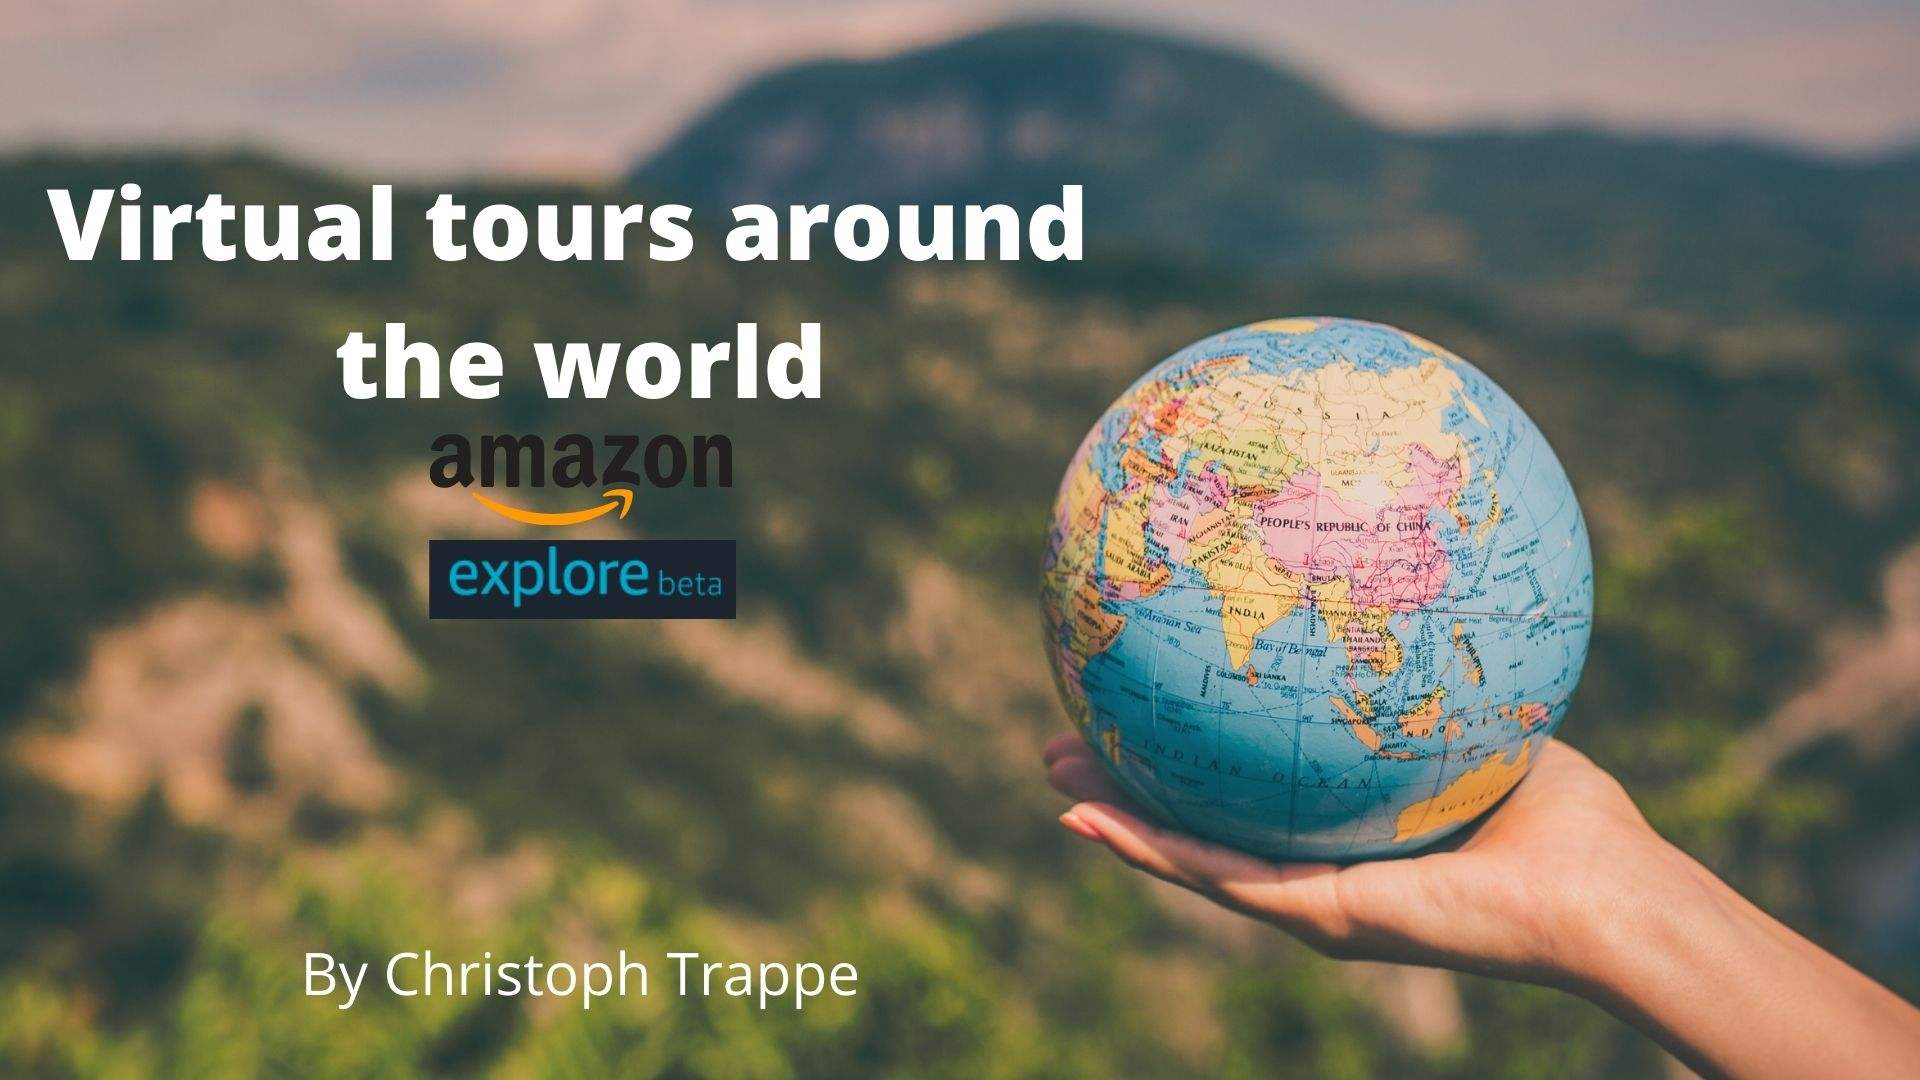 Virtual tours around the world with